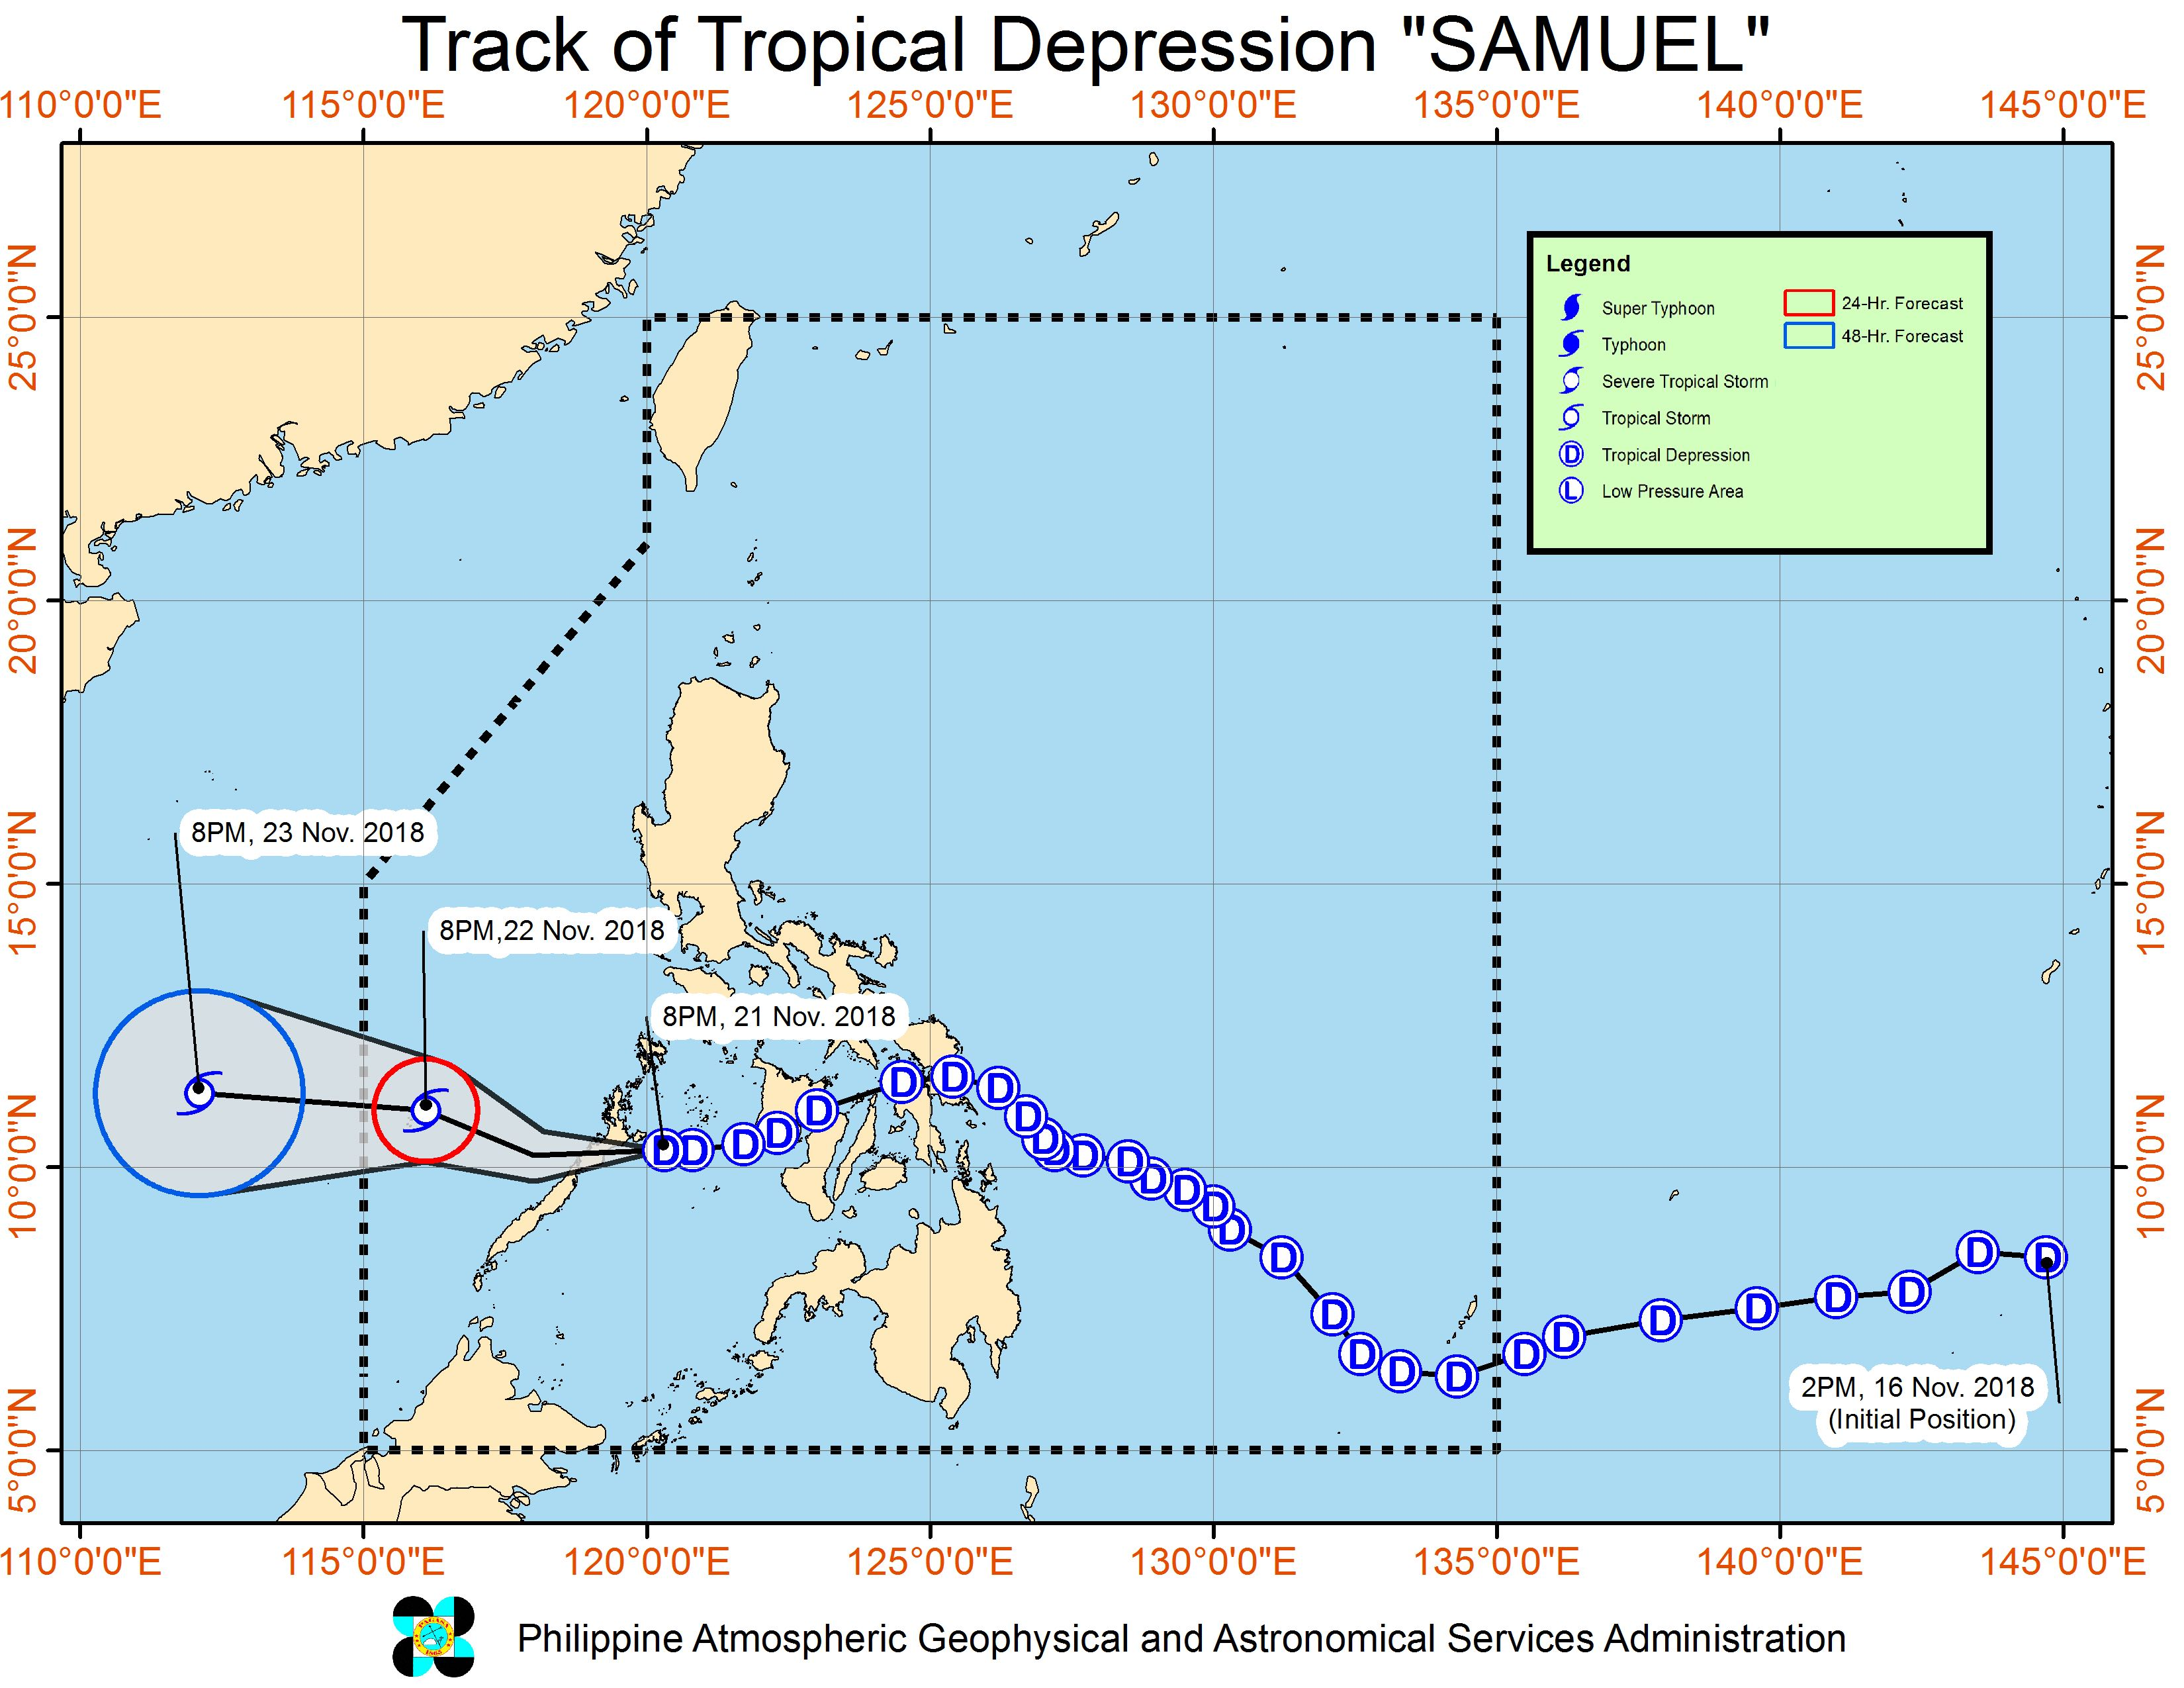 Forecast track of Tropical Depression Samuel as of November 21, 2018, 11 pm. Image from PAGASA